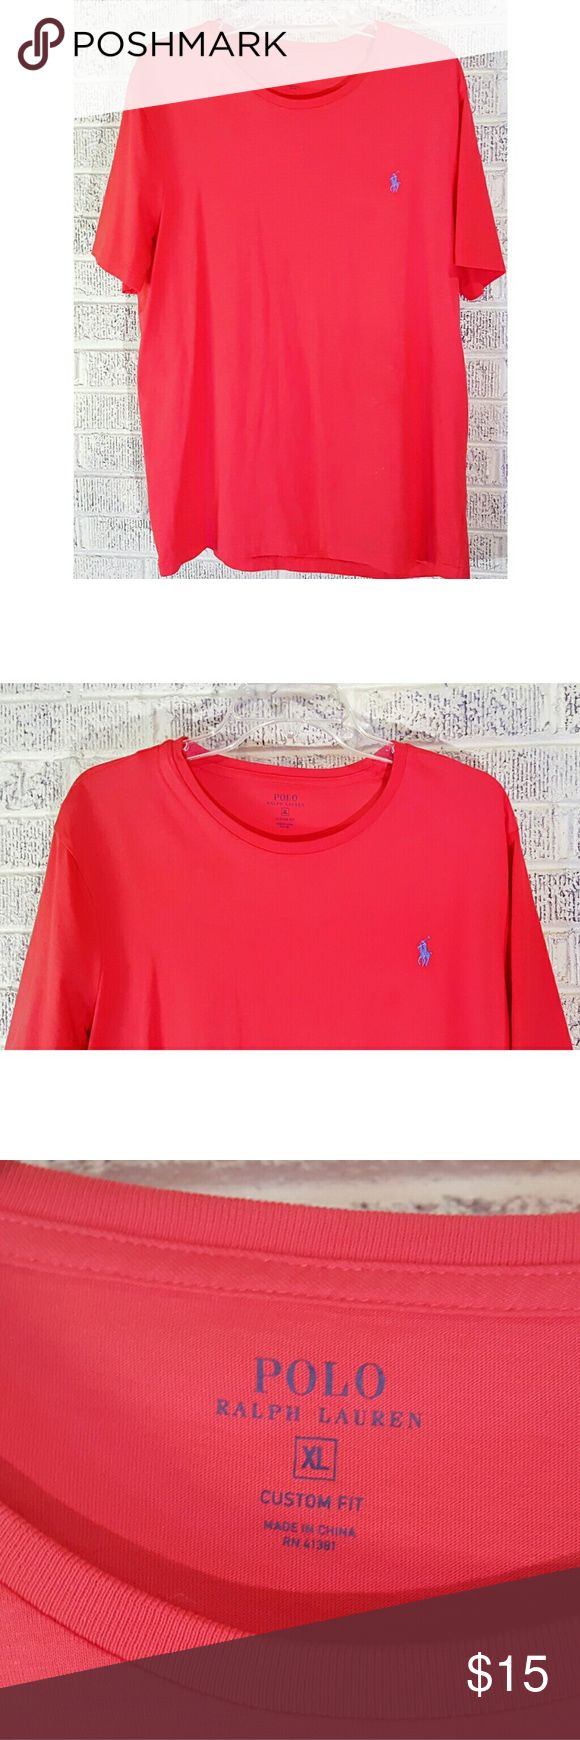 Polo Ralph Lauren Crew Neck Logo T Shirt Polo Ralph Lauren Crew Neck Logo T Shirt Men's Size XL I believe this is Peach in color maybe. Close. Its bright. Measurements on Request Excellent Like New Condition Condition Rank 9.5/10 No tags Pre Owned This T was mine. I literally tried it on, it was way too big and took it off. I may have had it on for 30 sec.  Thanks We Ship Fast Updating New Items Daily Ralph Lauren Shirts Tees - Short Sleeve